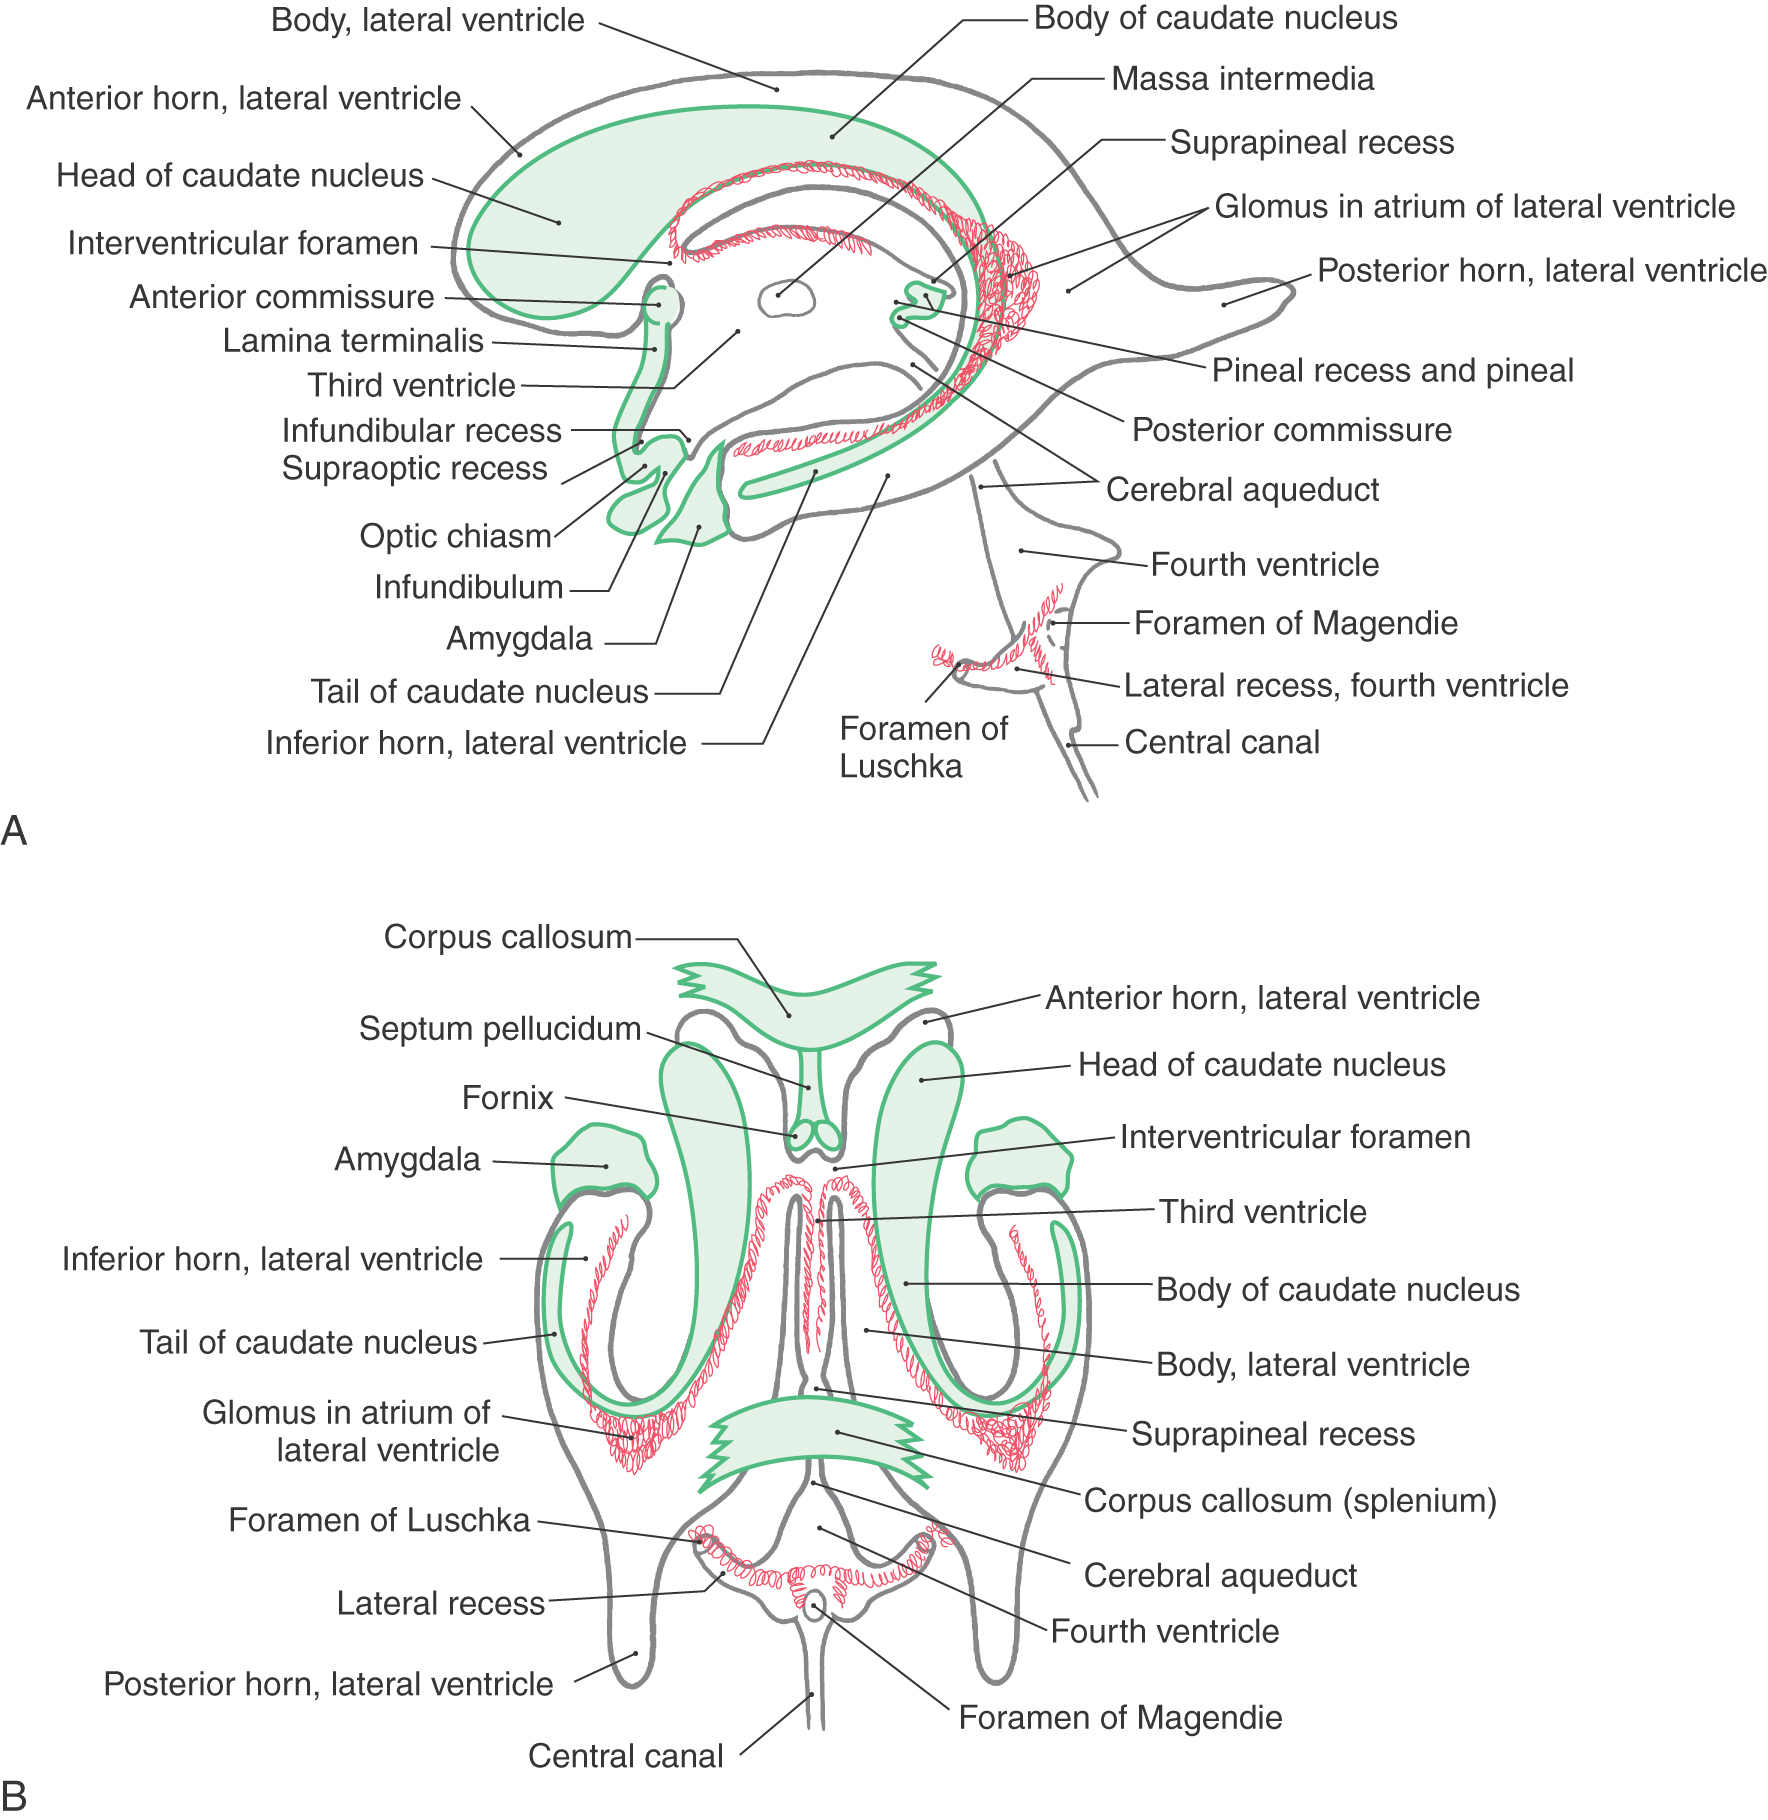 The Ventricles, Choroid Plexus, and Cerebrospinal Fluid | Clinical Gate